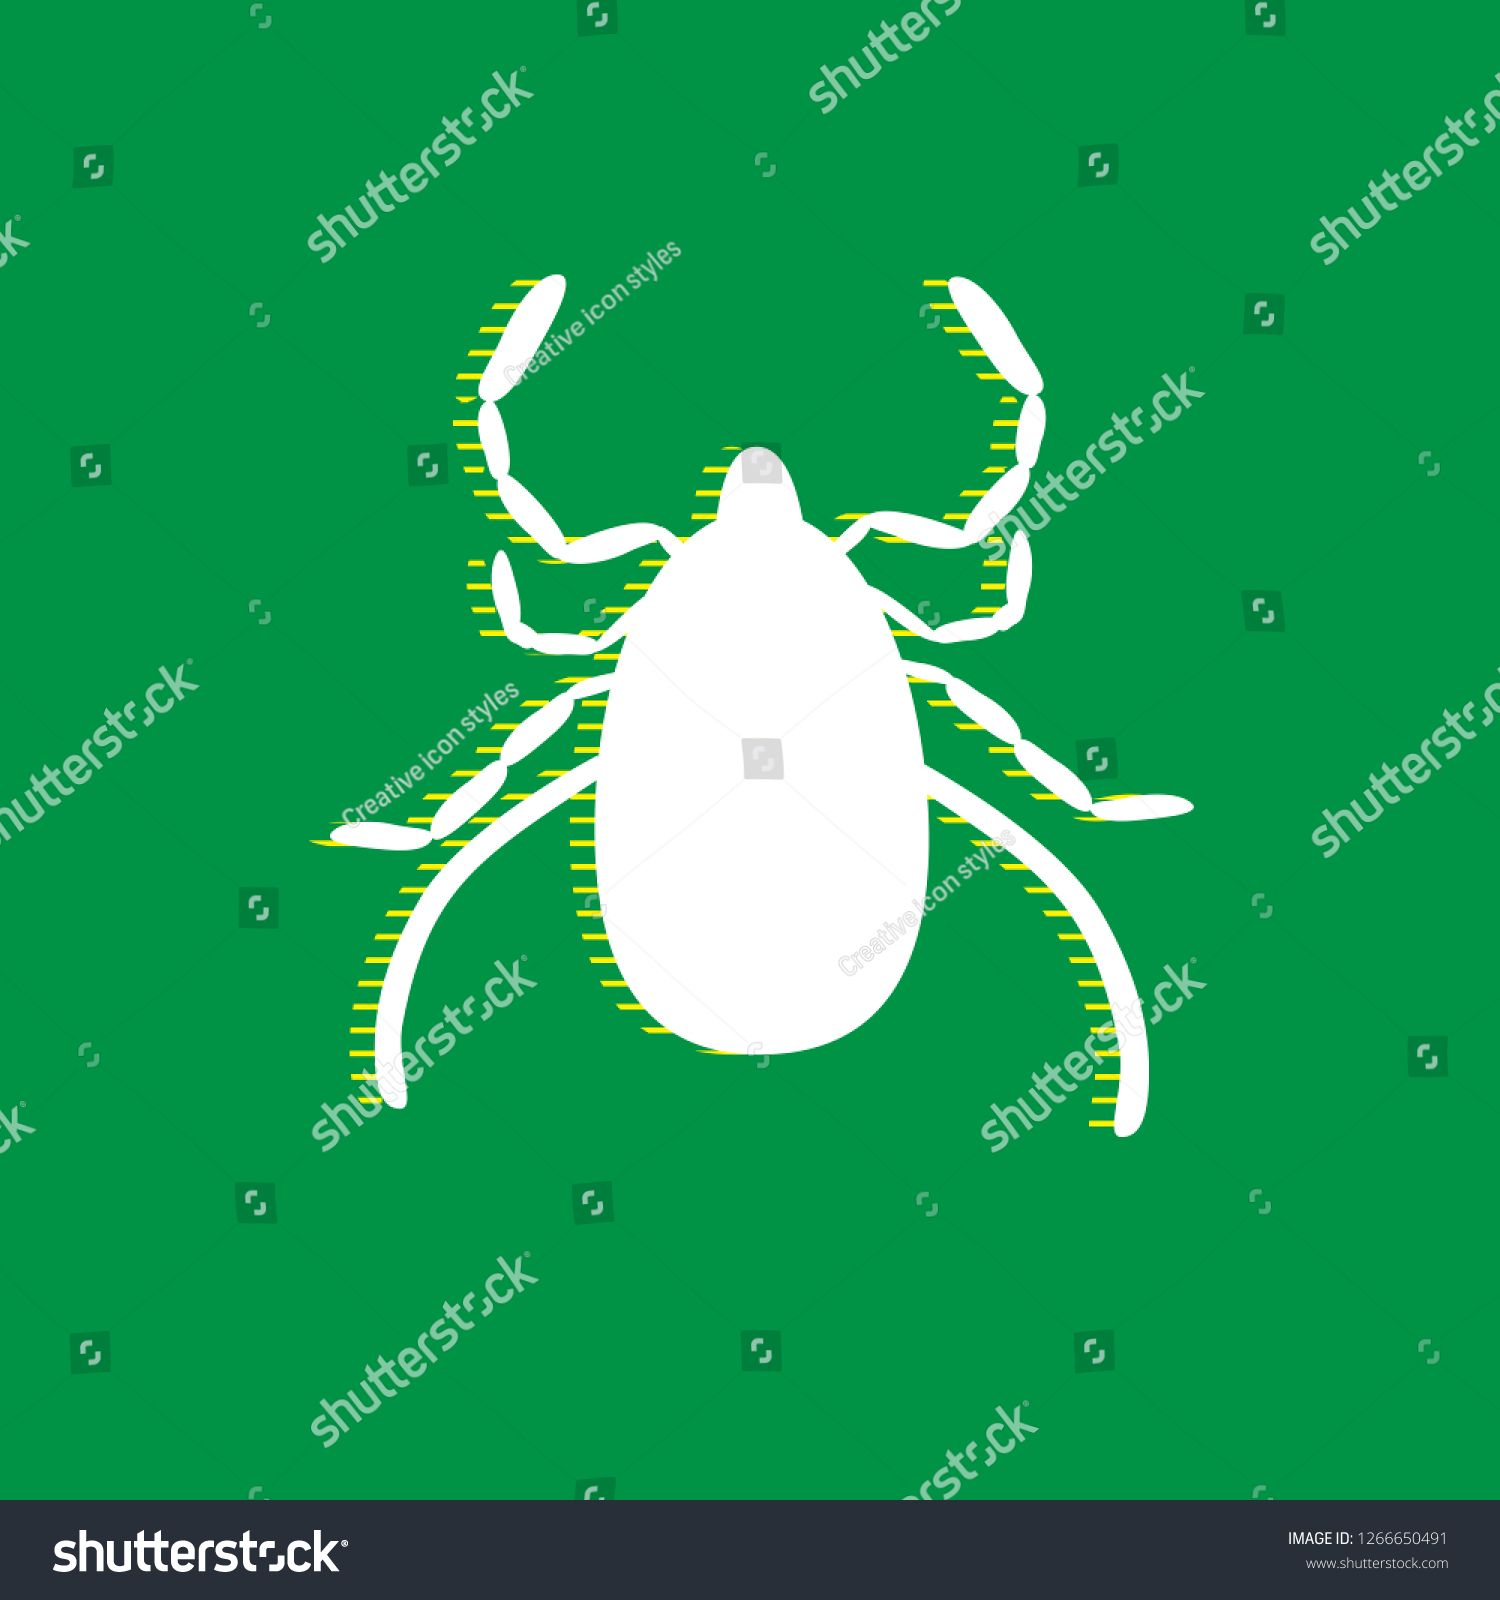 Dust mite sign illustration. Vector. White flat icon with